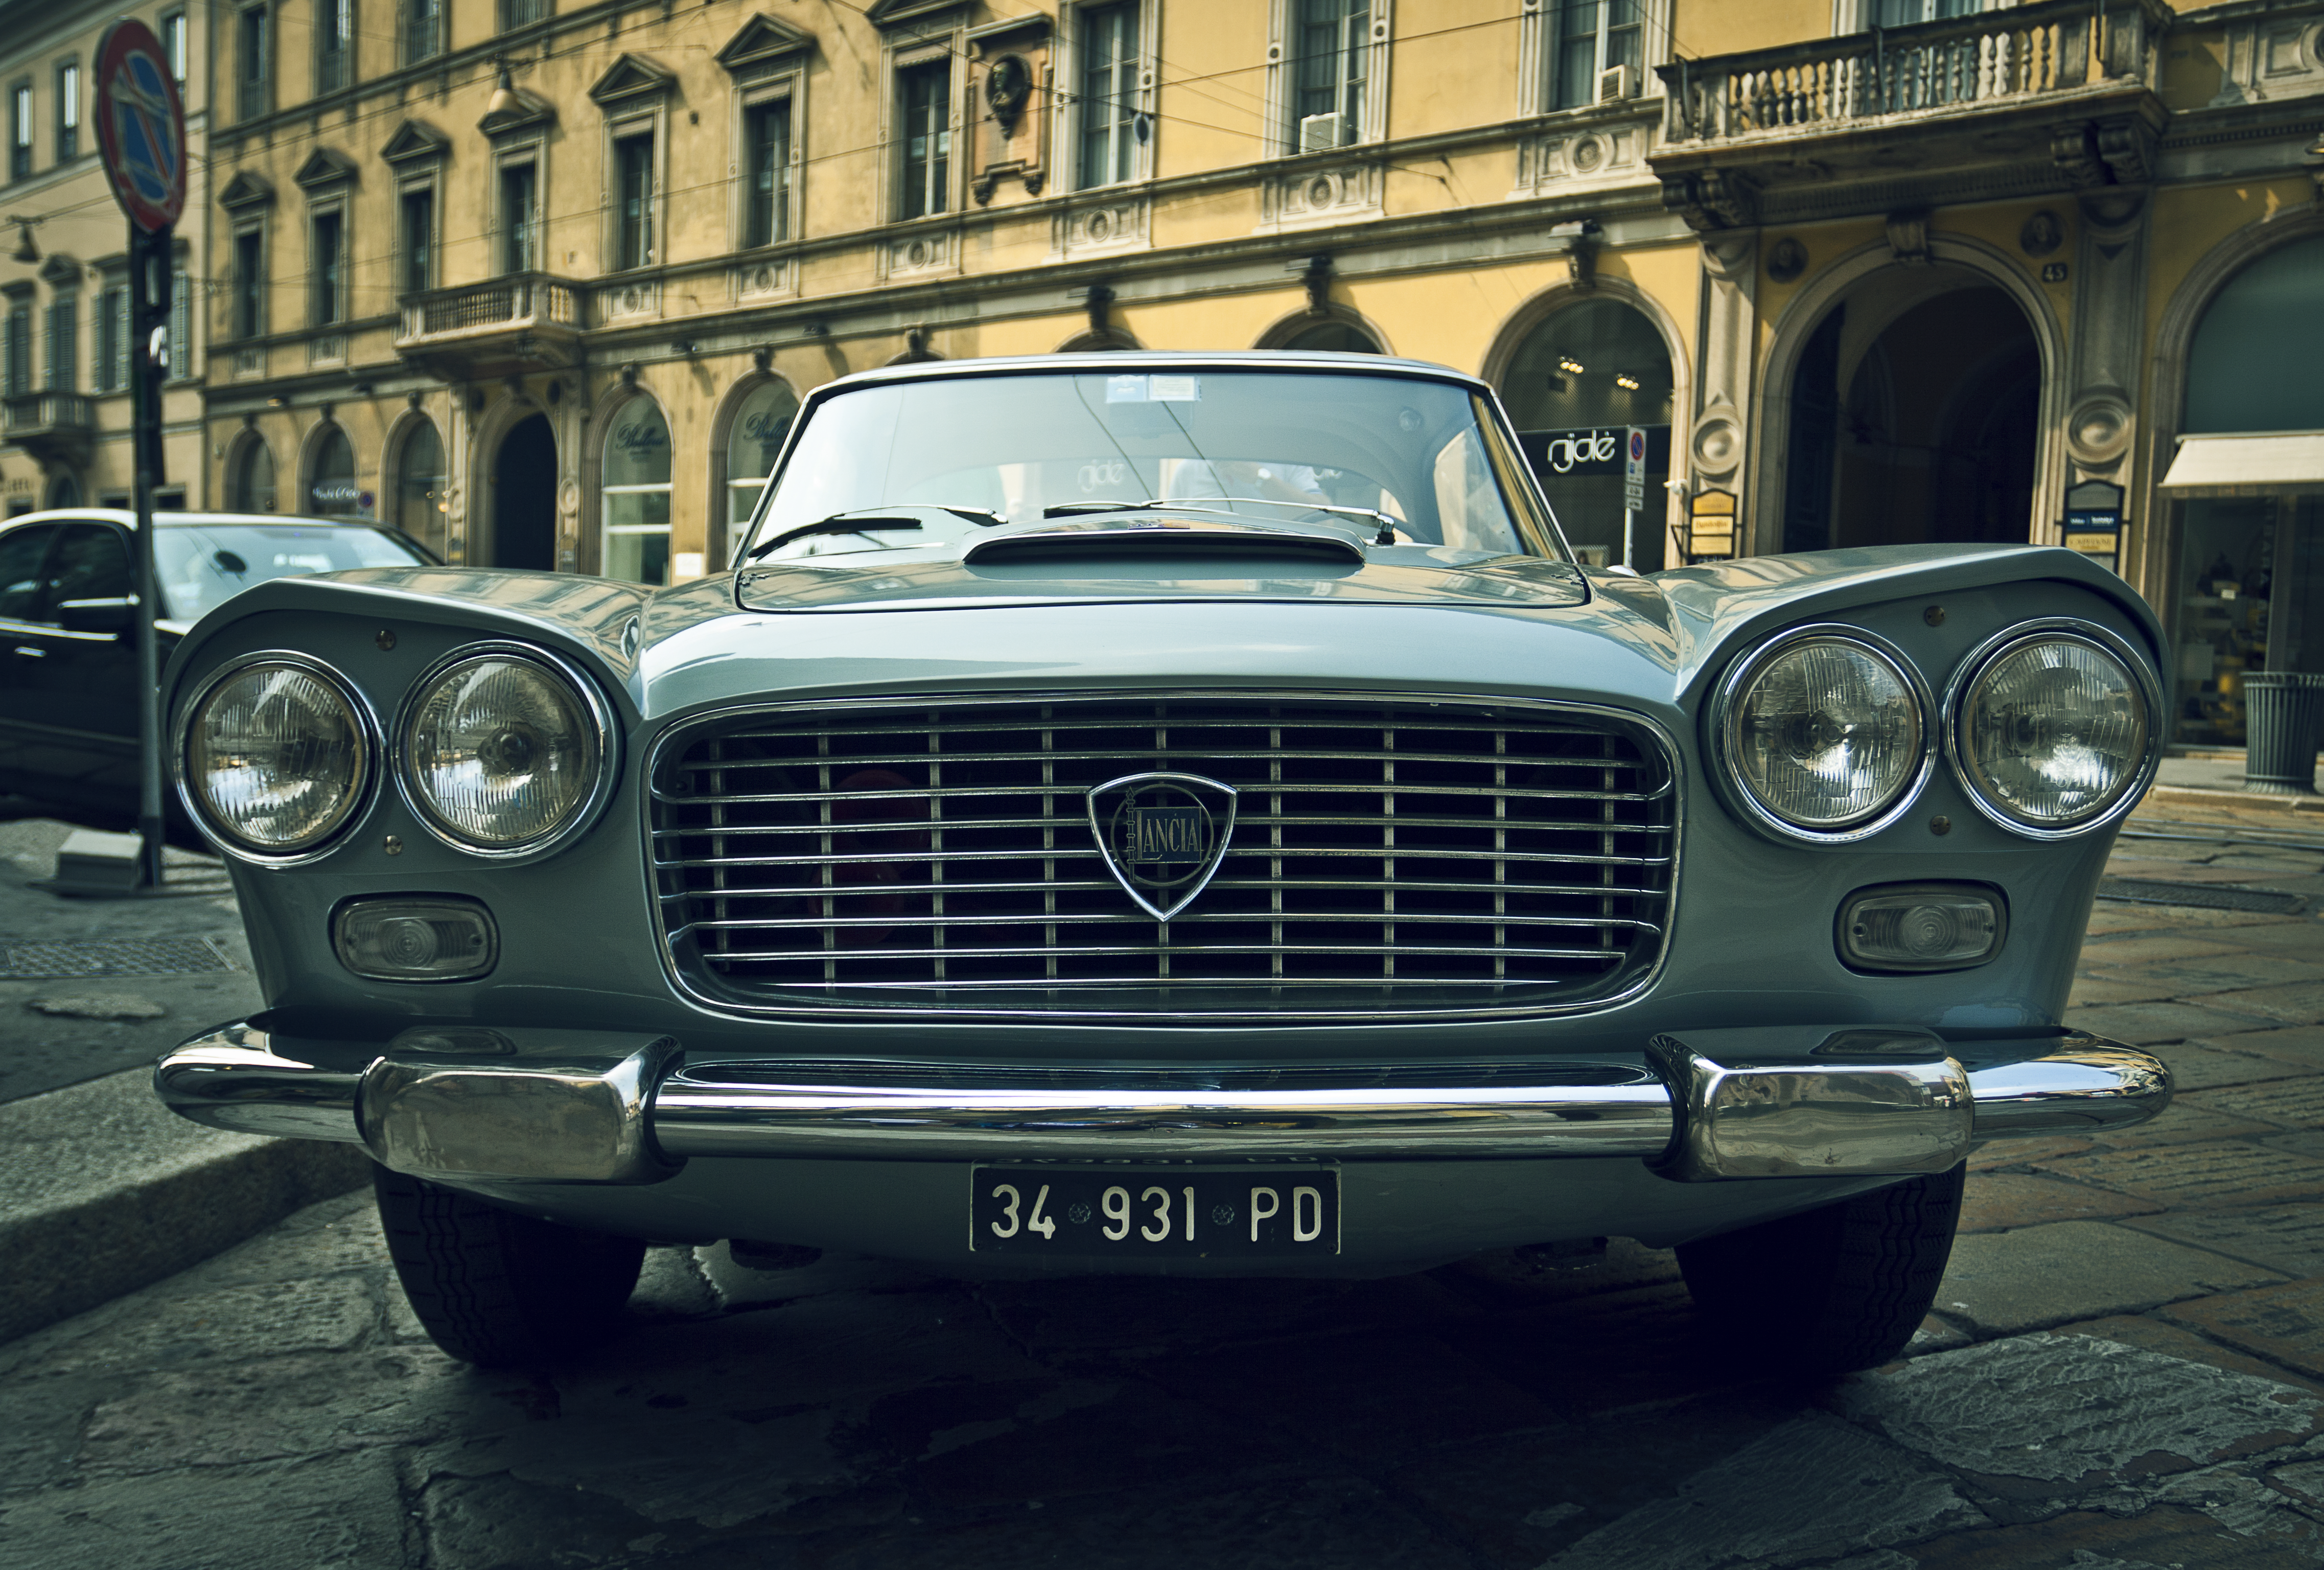 Front view of a vintage car in a European city.